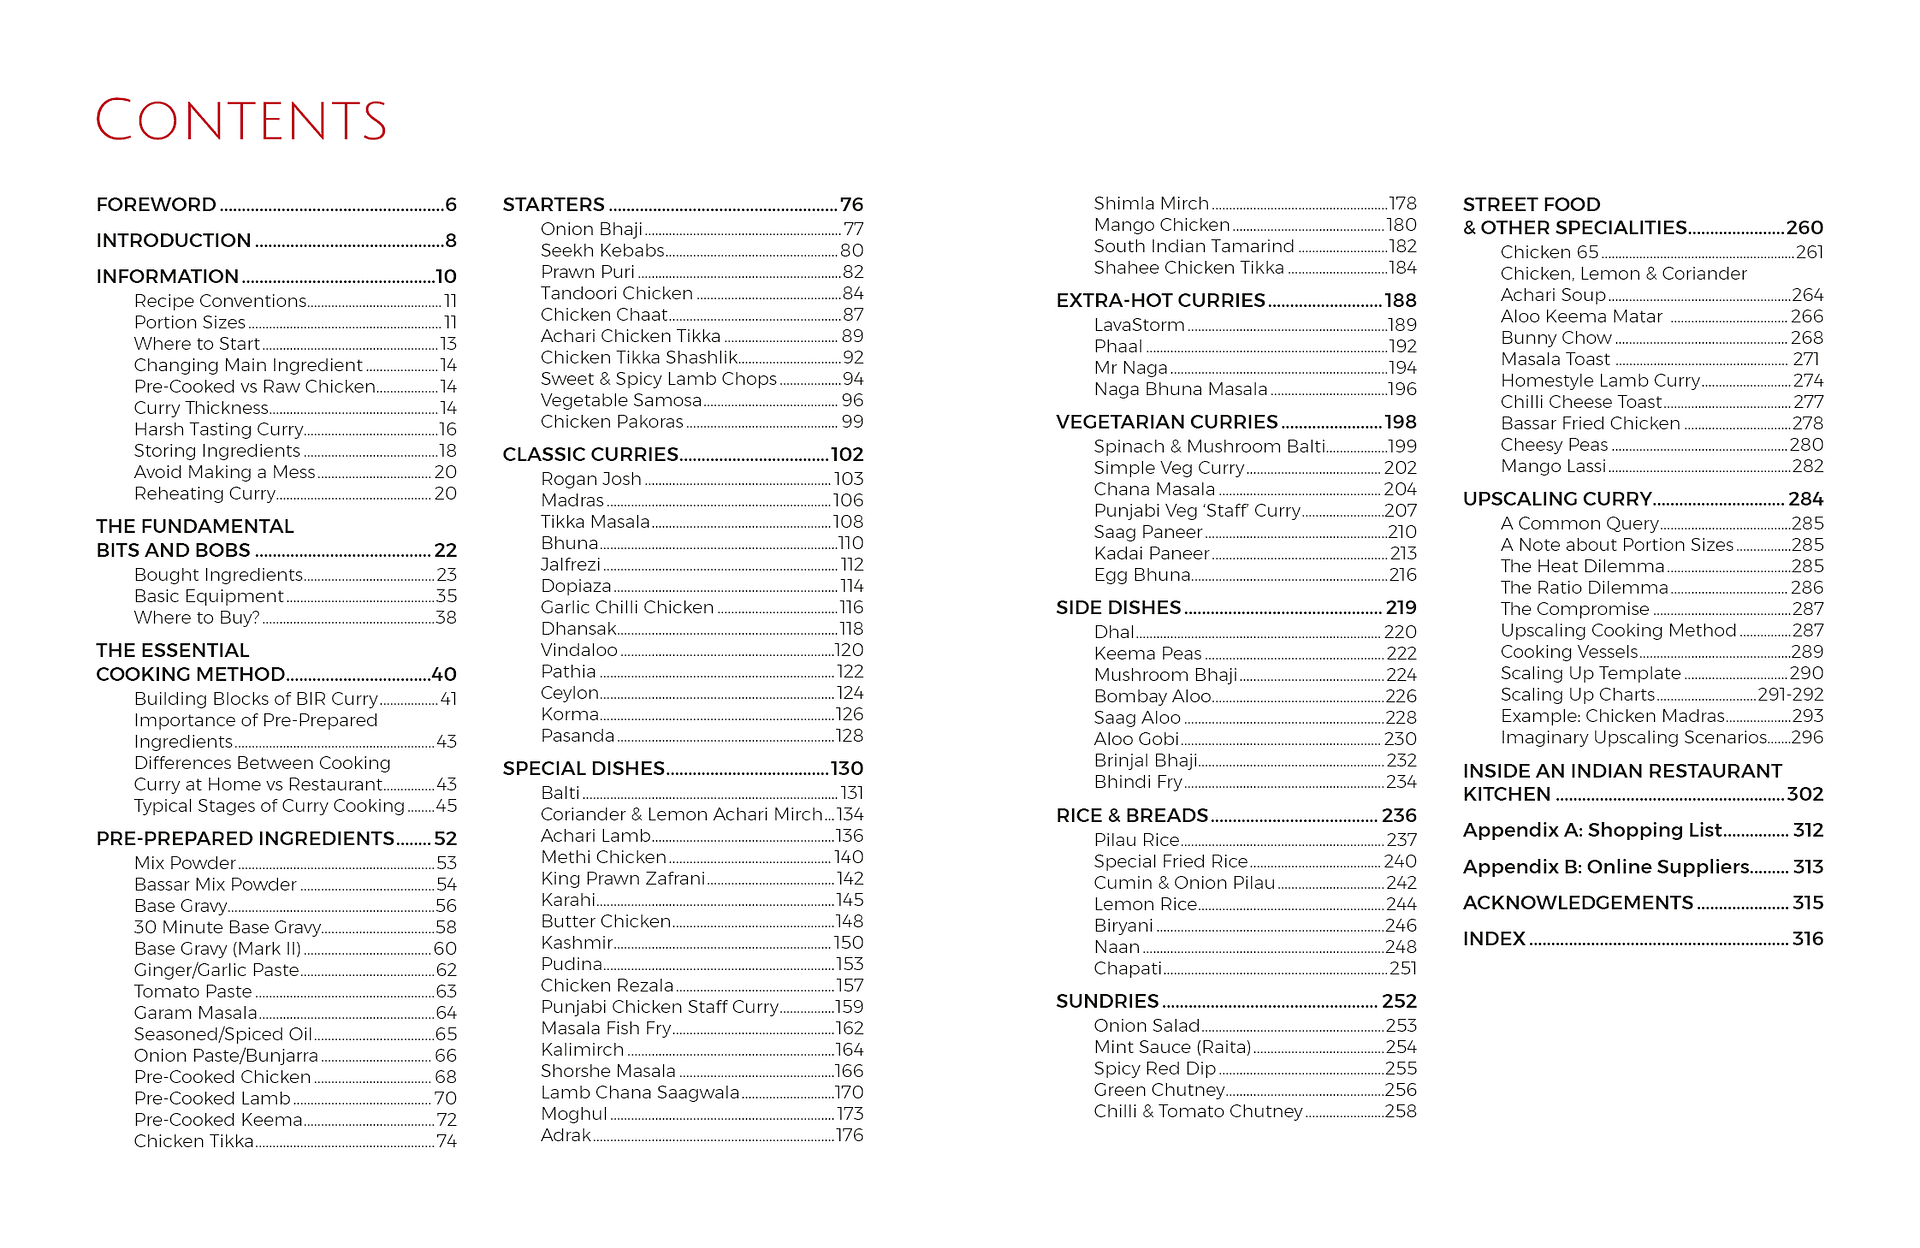 Contents Page from Curry Compendium